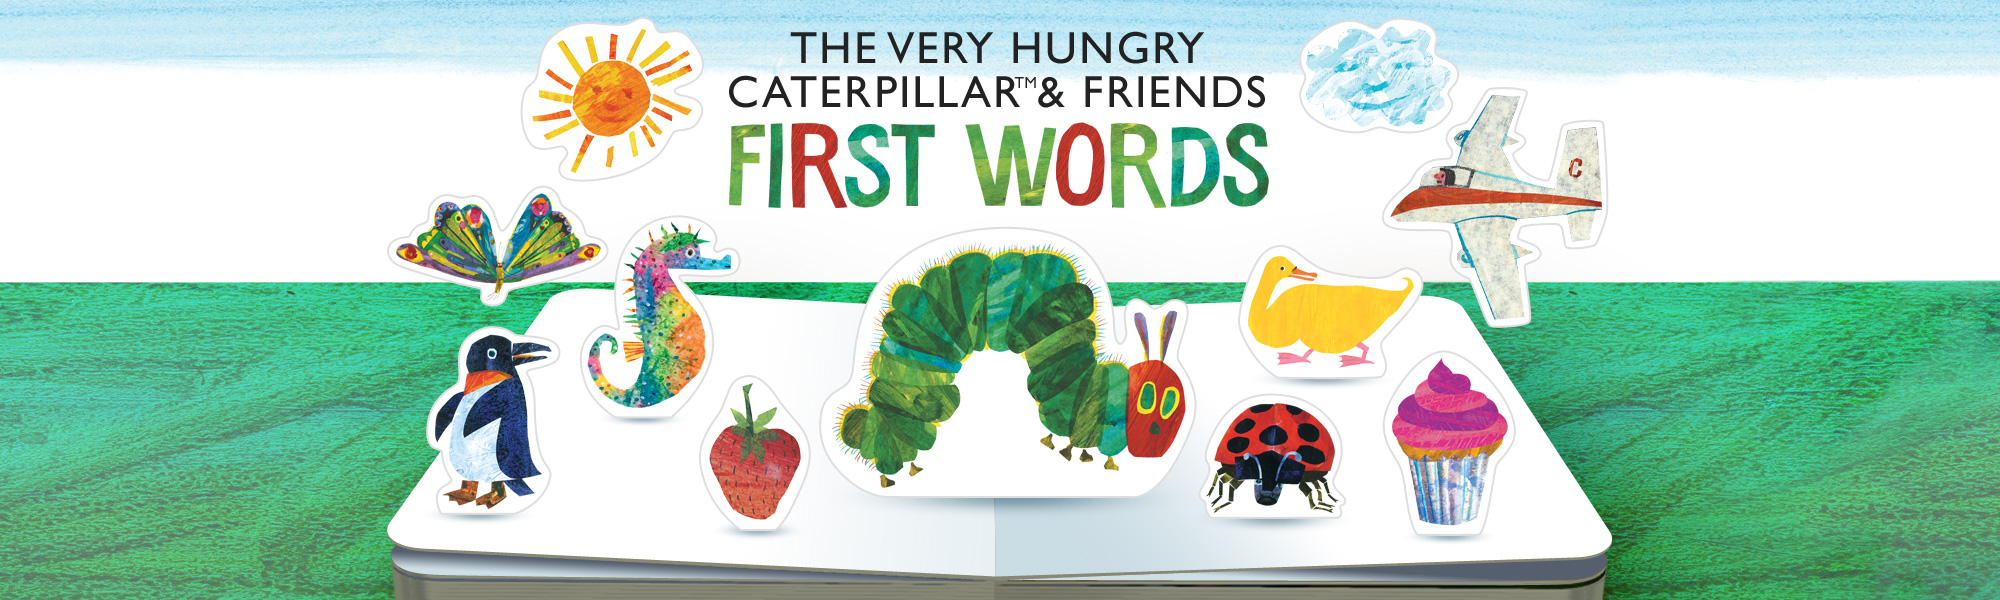 The Very Hungry Caterpillar & Friends First Words, a 3D pop-up app for young children